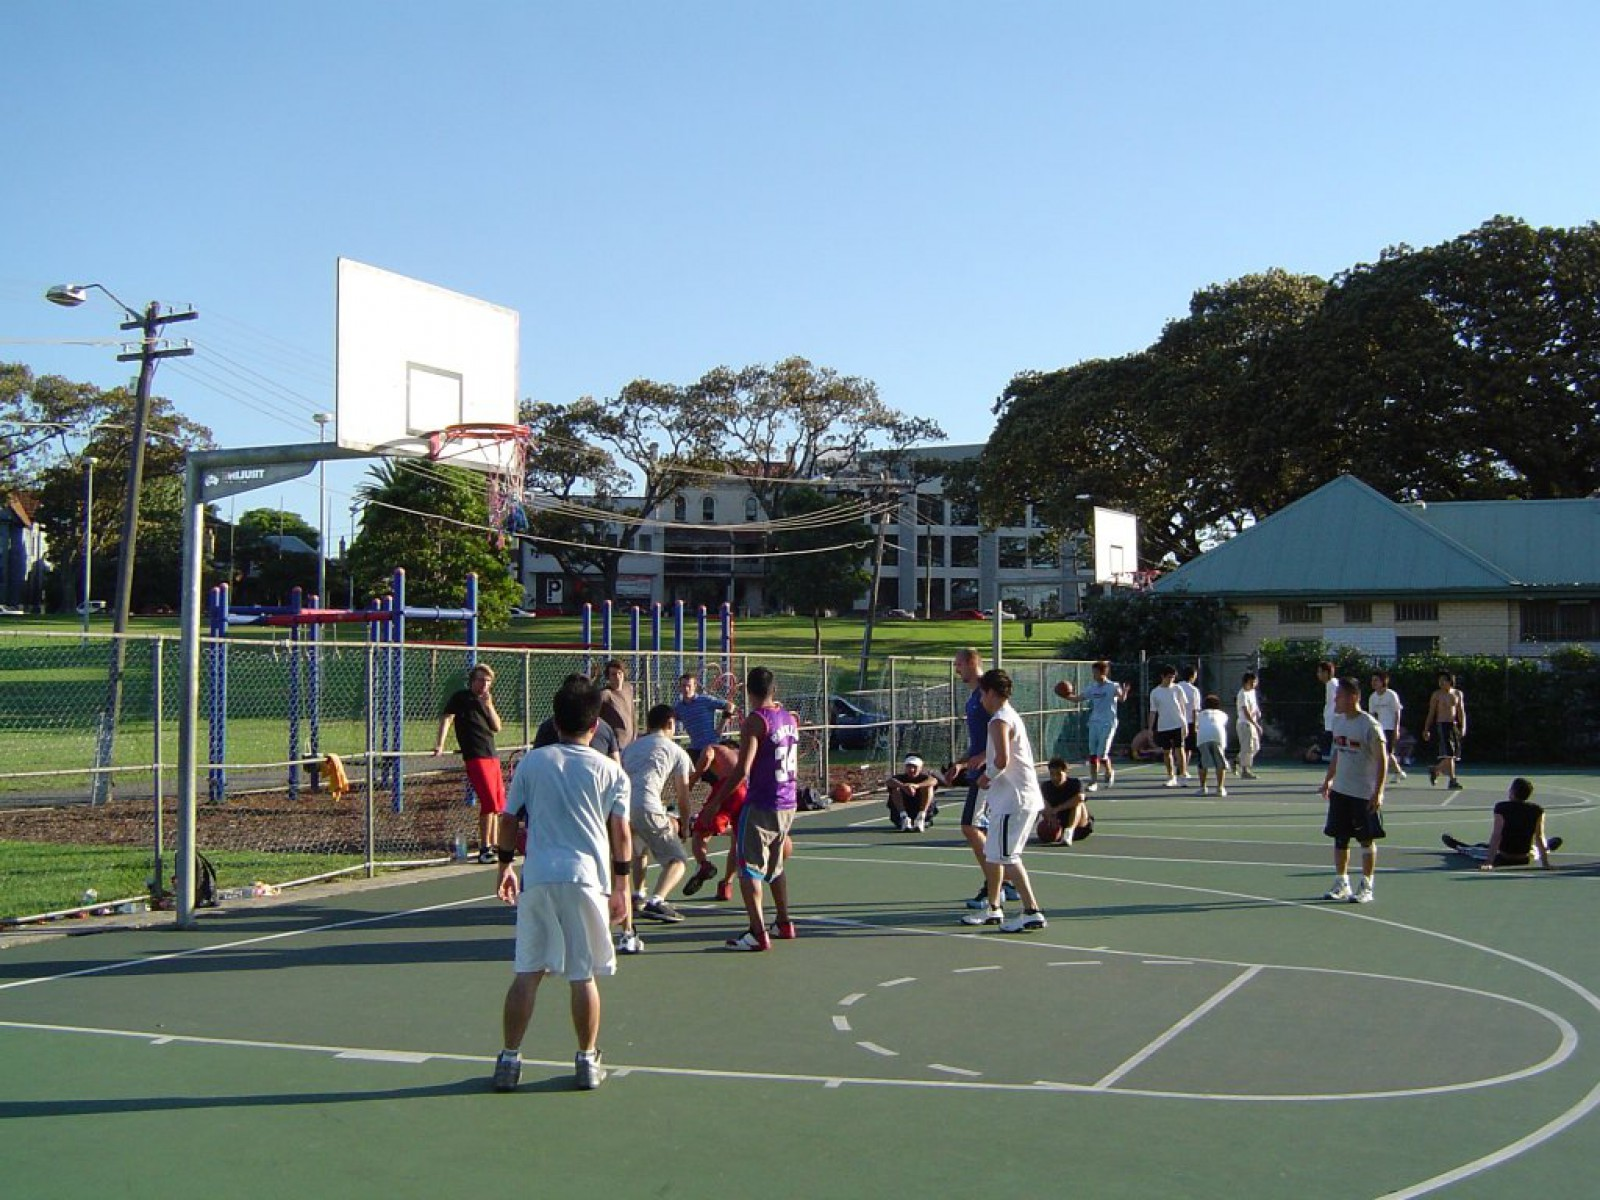 Basketball Court at Prince Alfred Park in Sydney, Australia